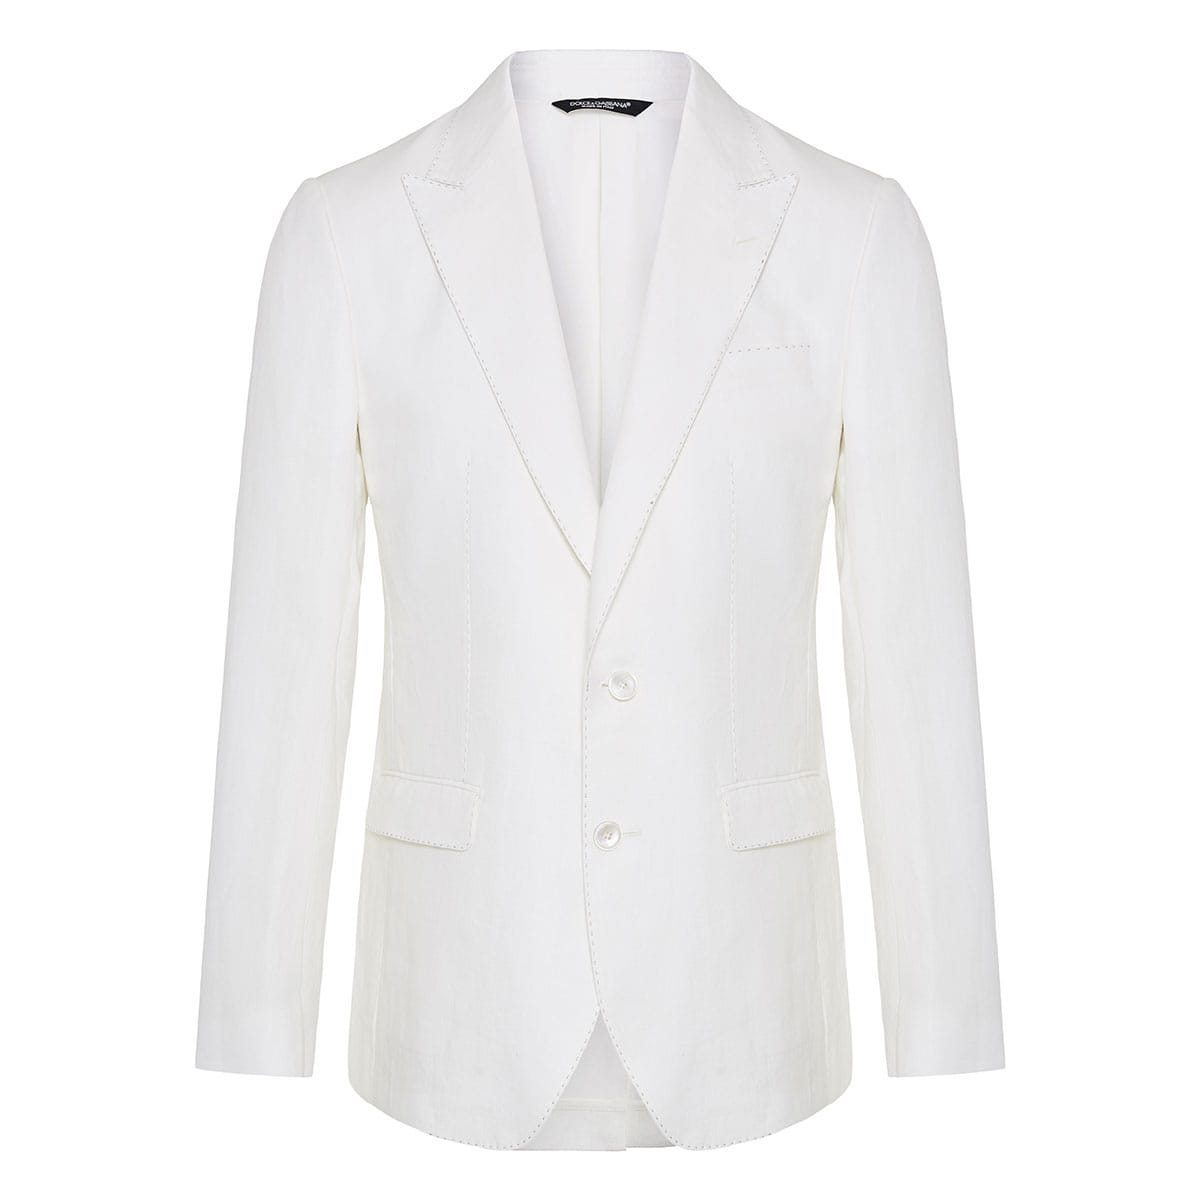 Single-breasted linen suit